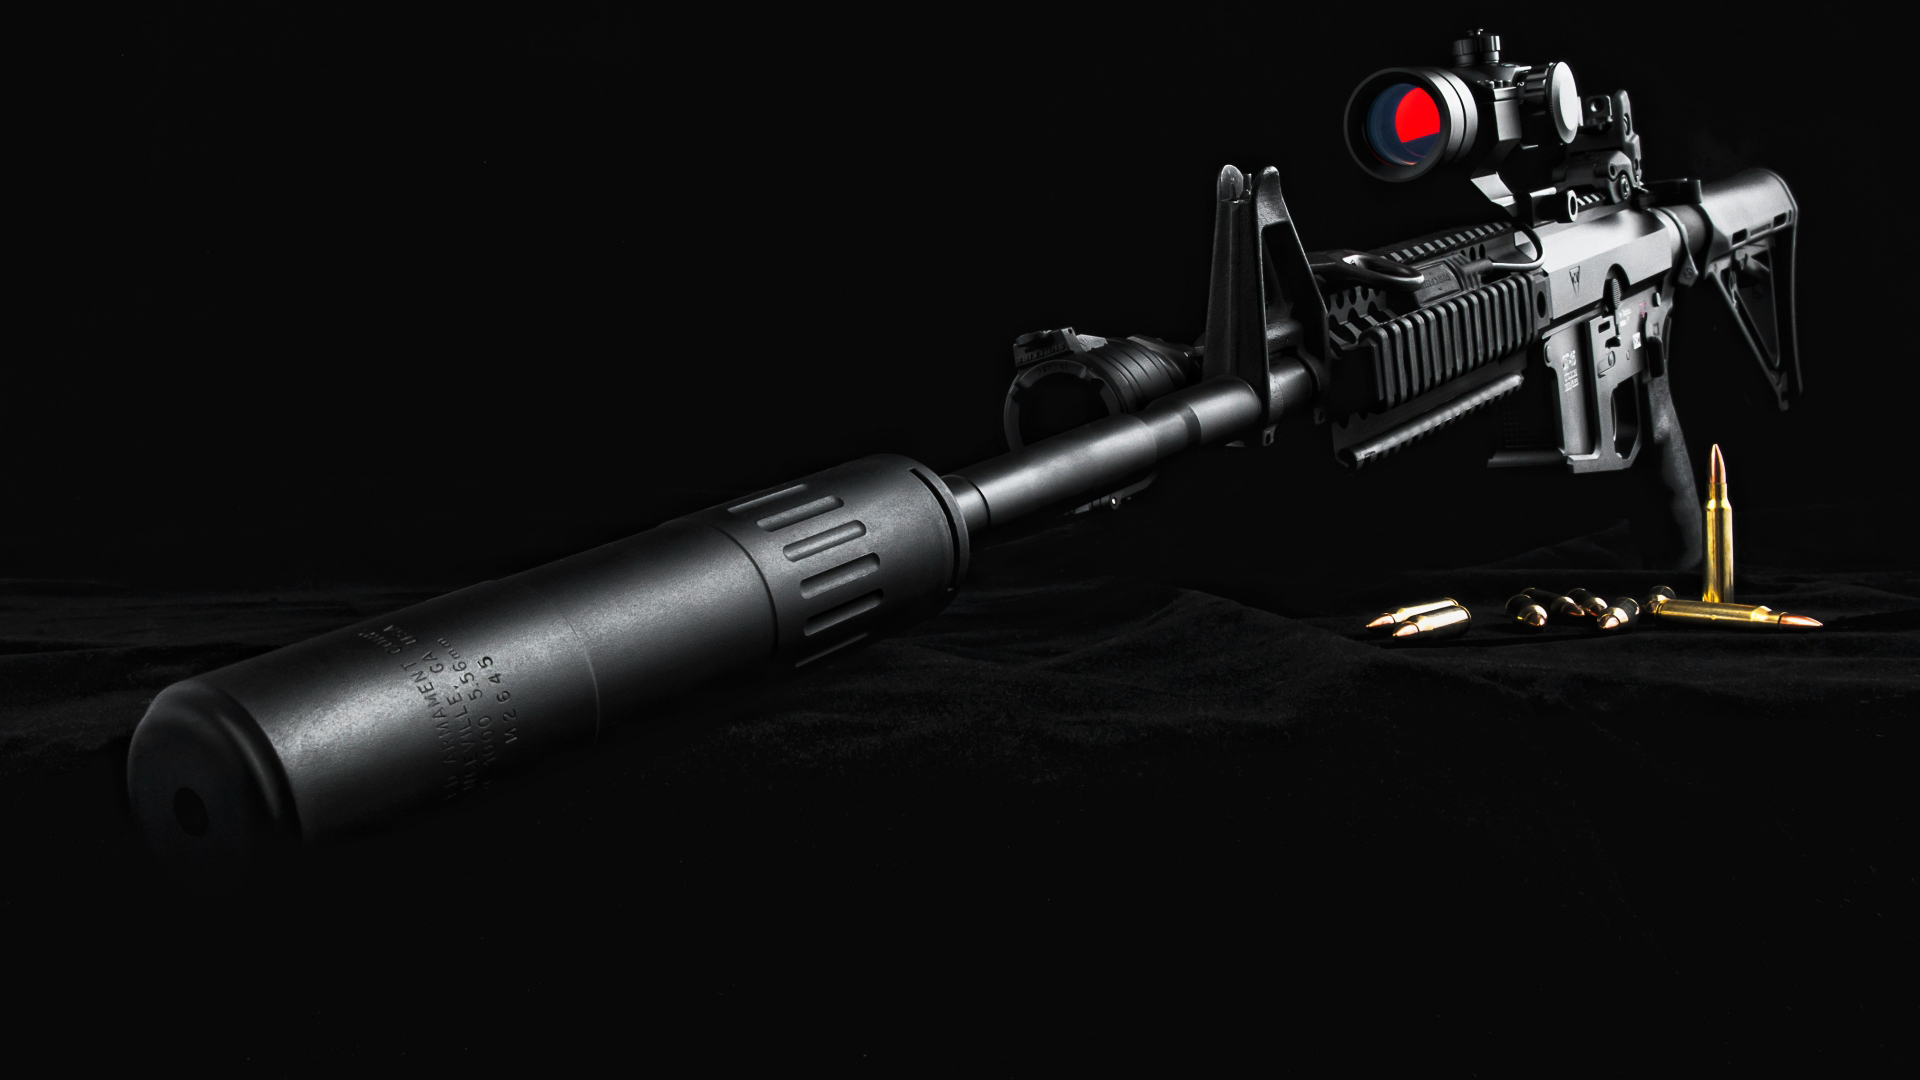 sniper scope ammo bullet ammunition military wallpaper background 1920x1080